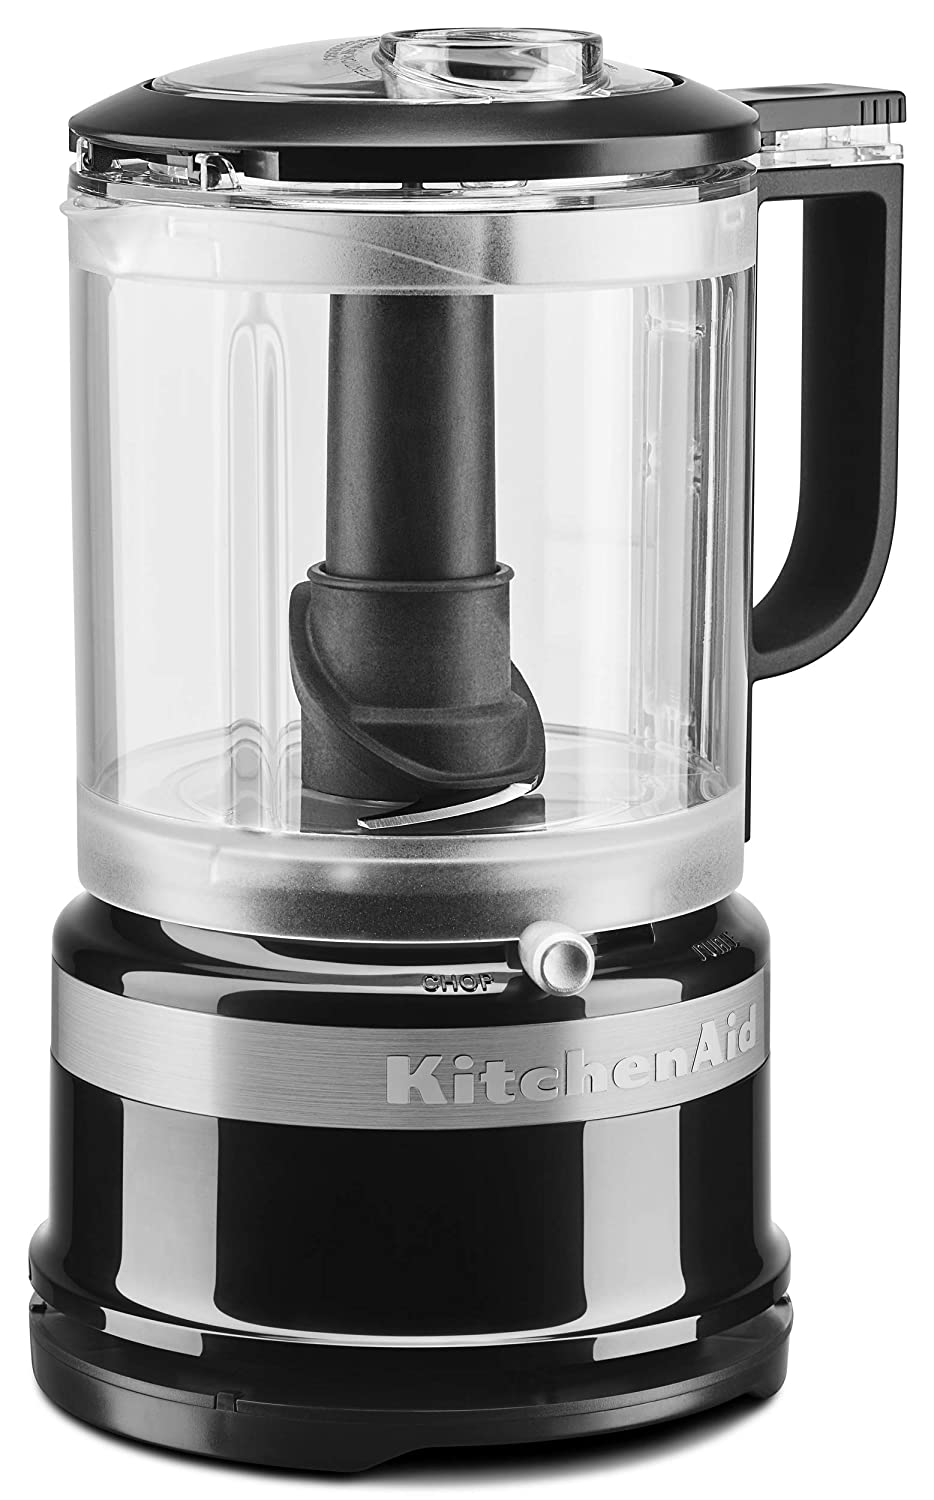 KitchenAid KFC0516OB 5 Cup whisking Accessory Food Chopper, Onyx Black